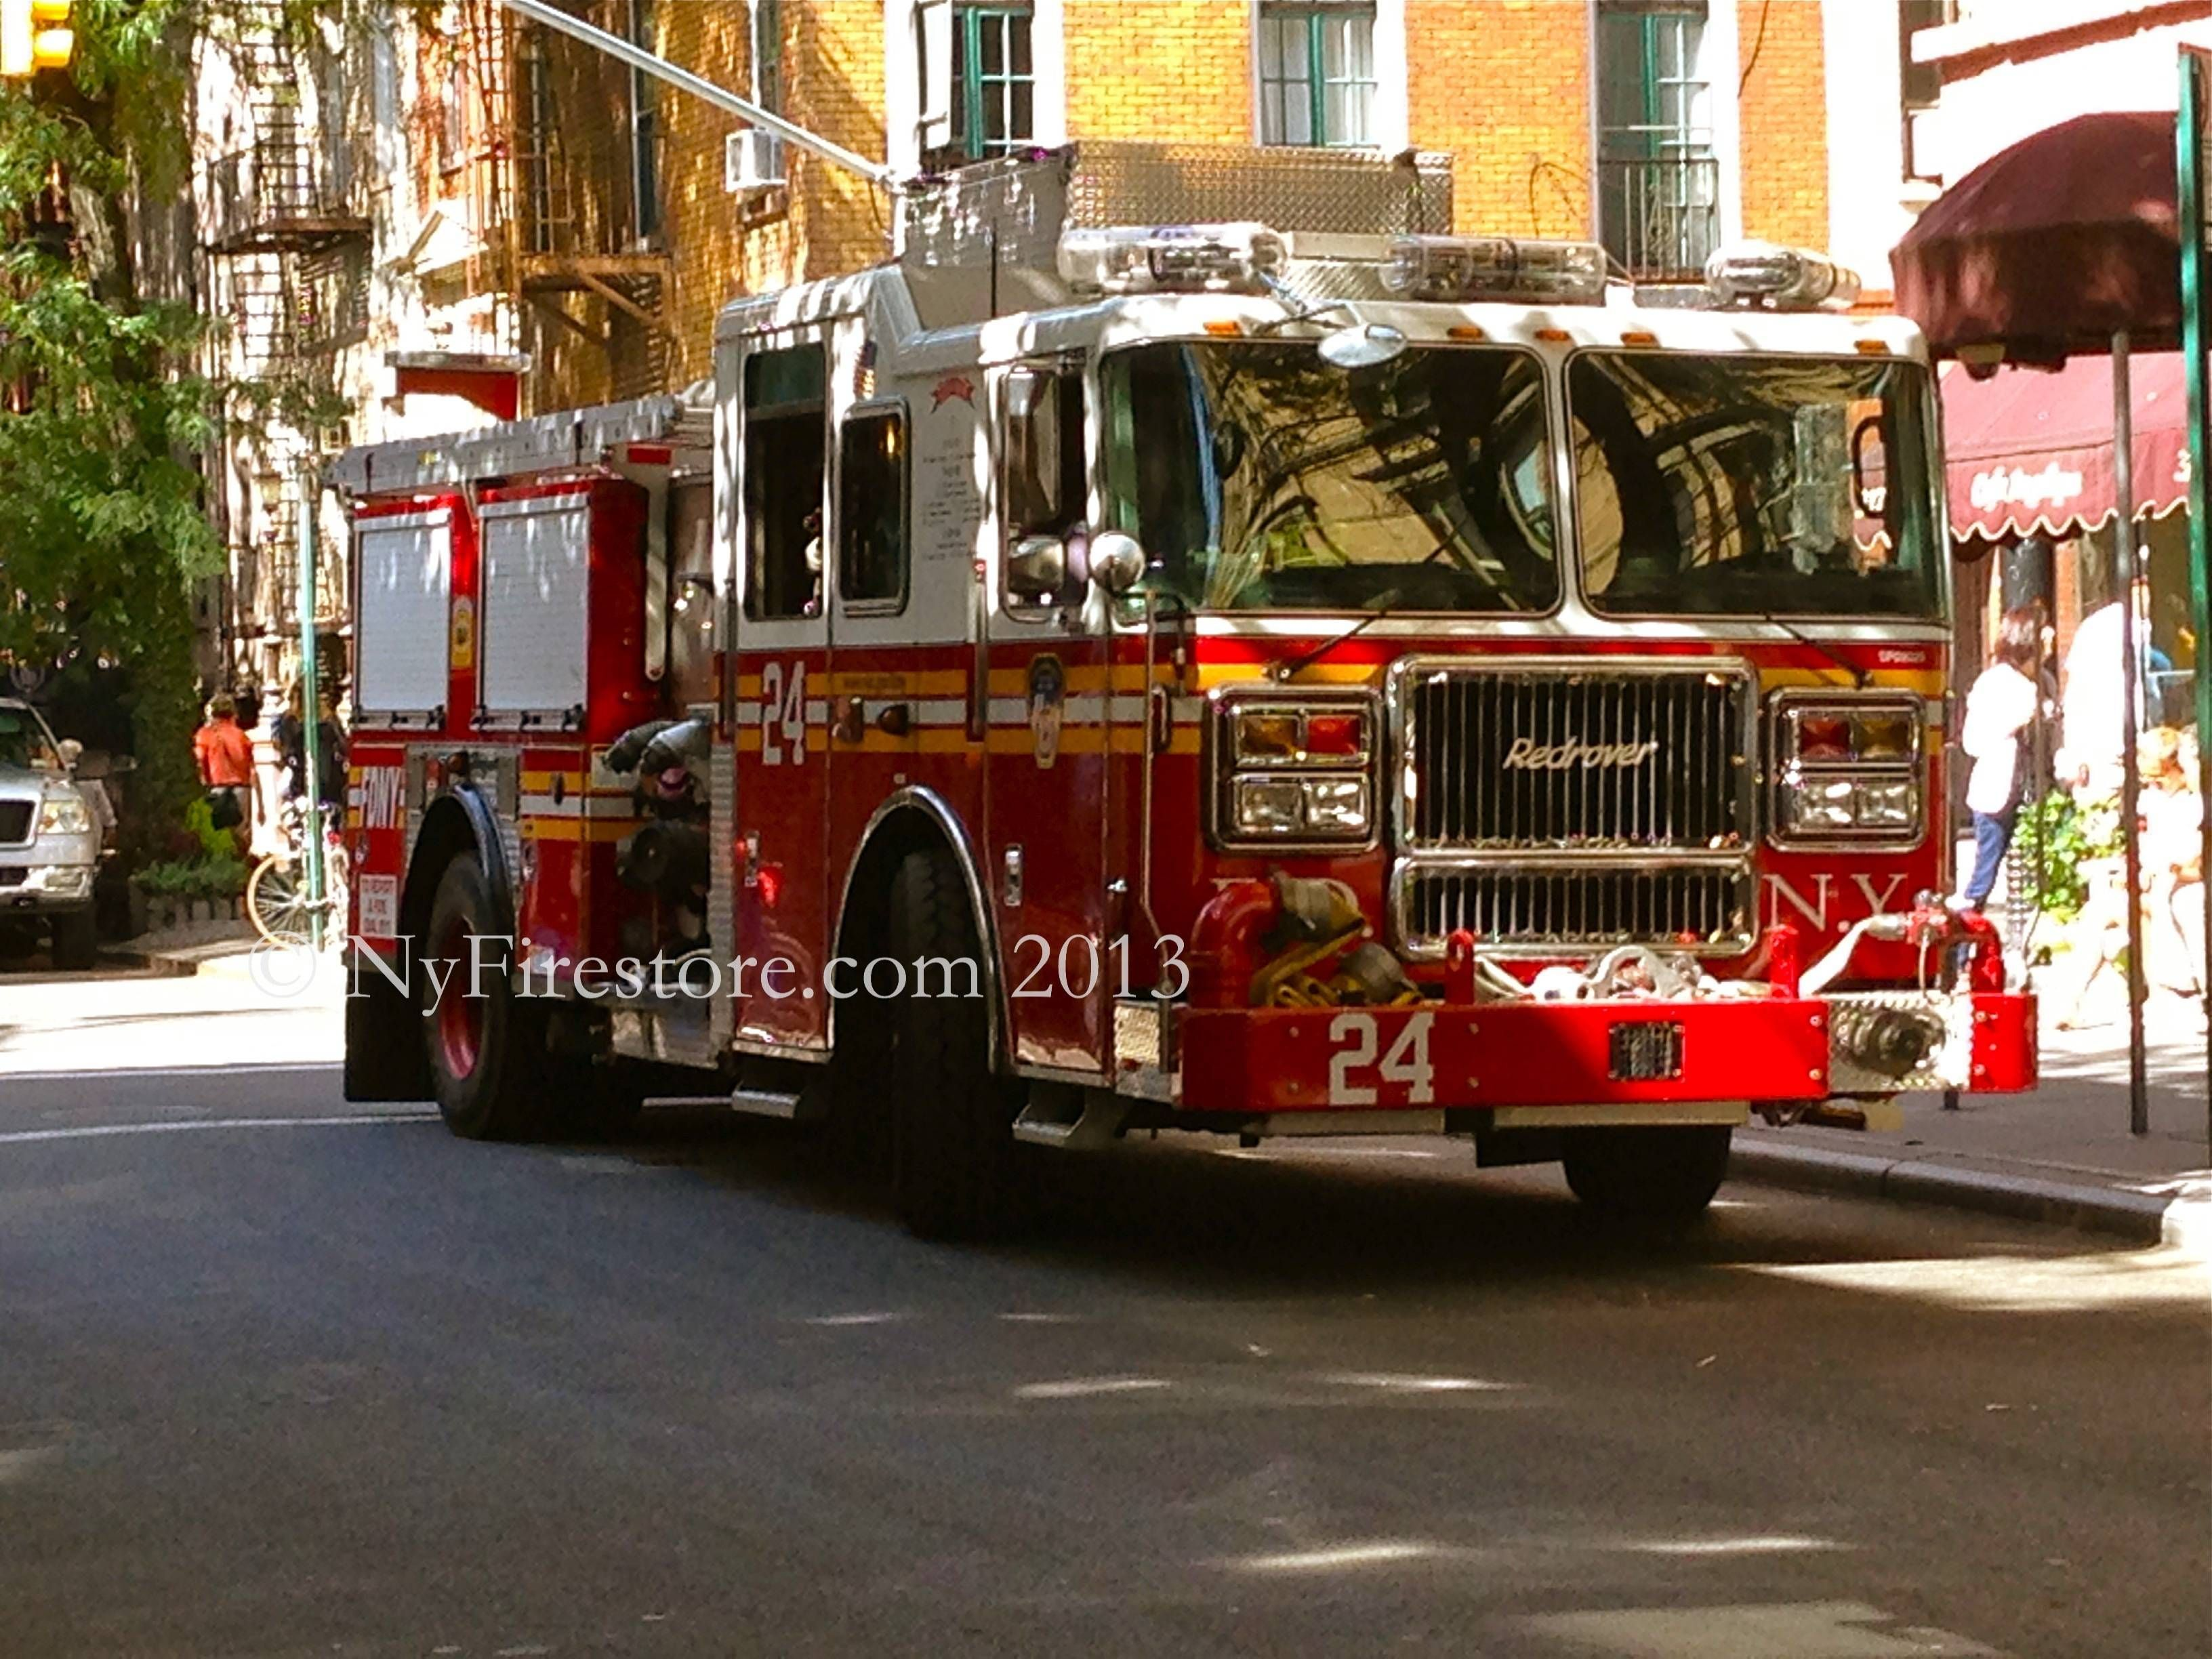 Four alarm fire at new york city high rise injures 24 people two critically fox news - Fdny Engine 24 Redrover